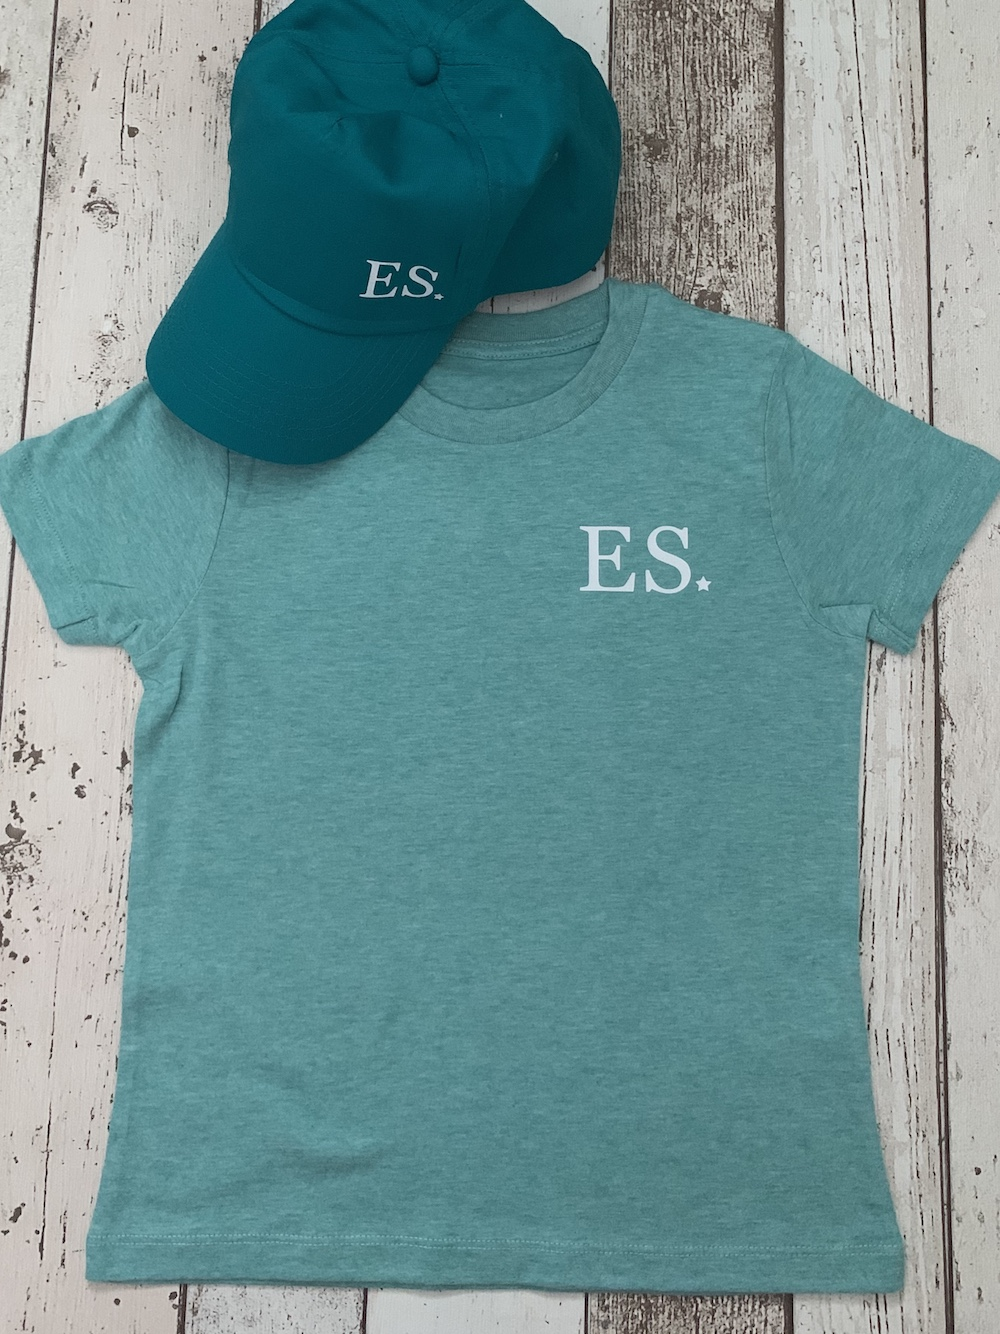 Initials Personalised Tshirt And Cap Set – Mint